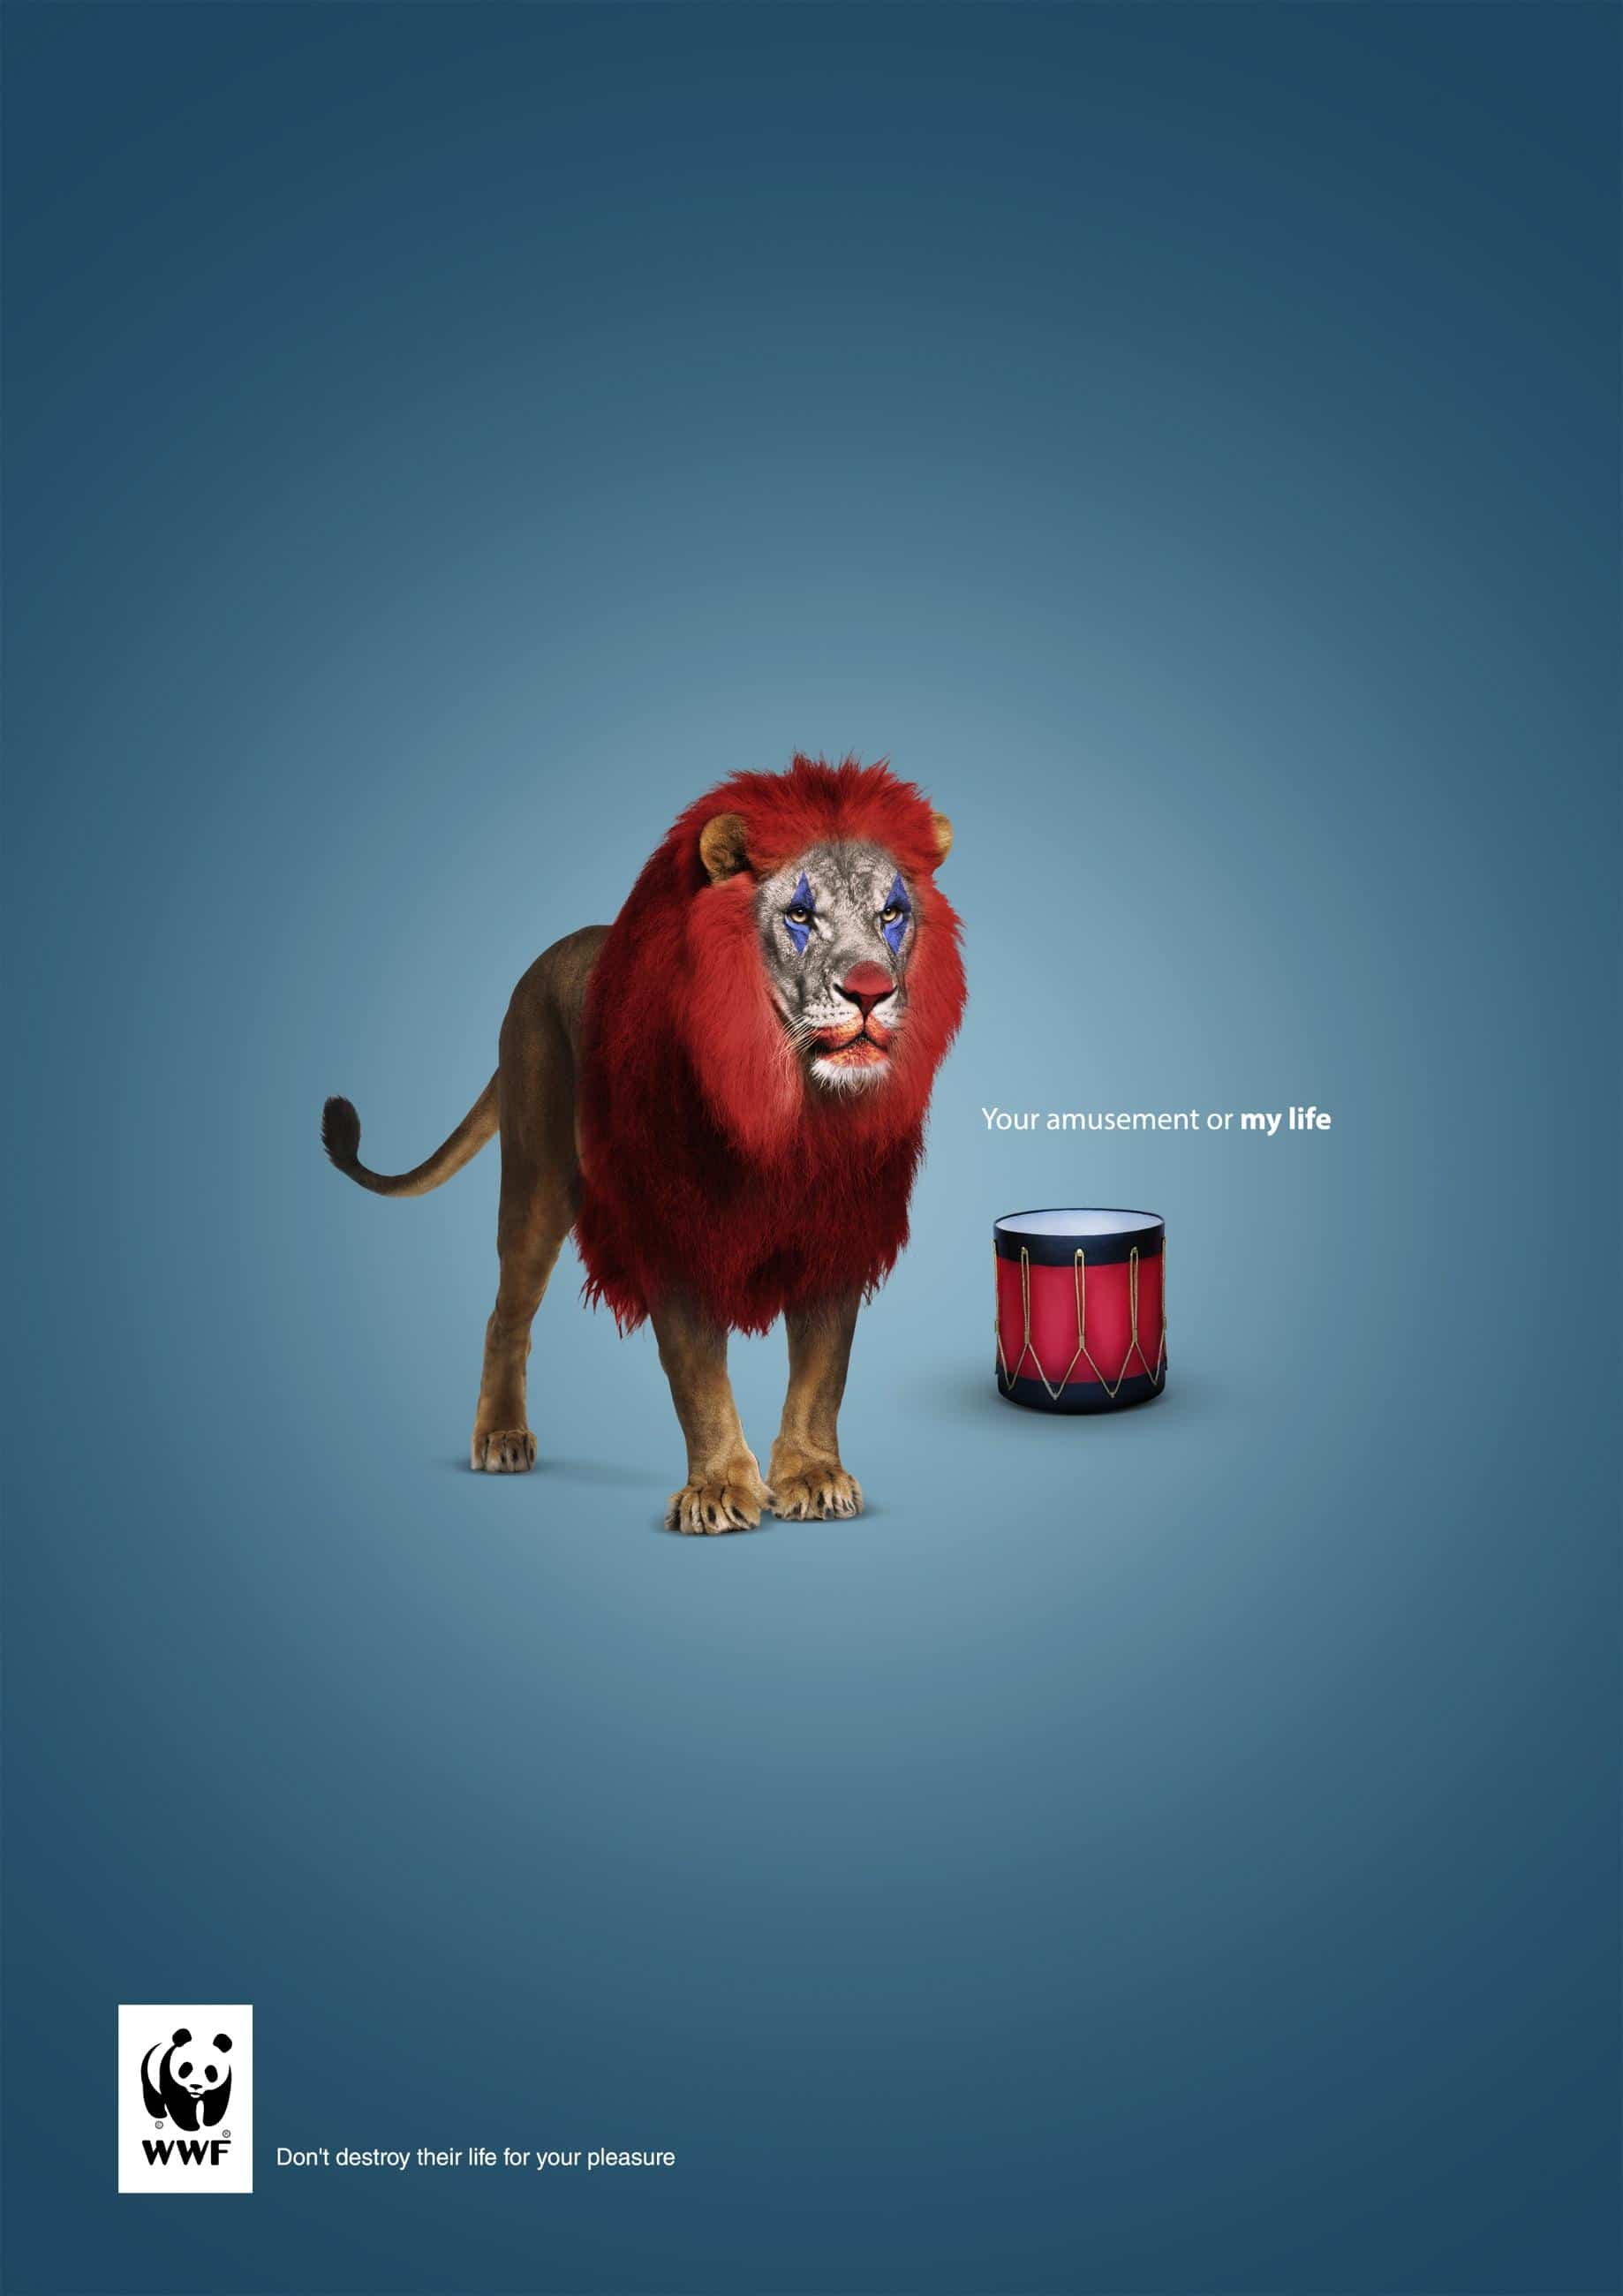 Your amusement or my life. WWF Campaign Advertising